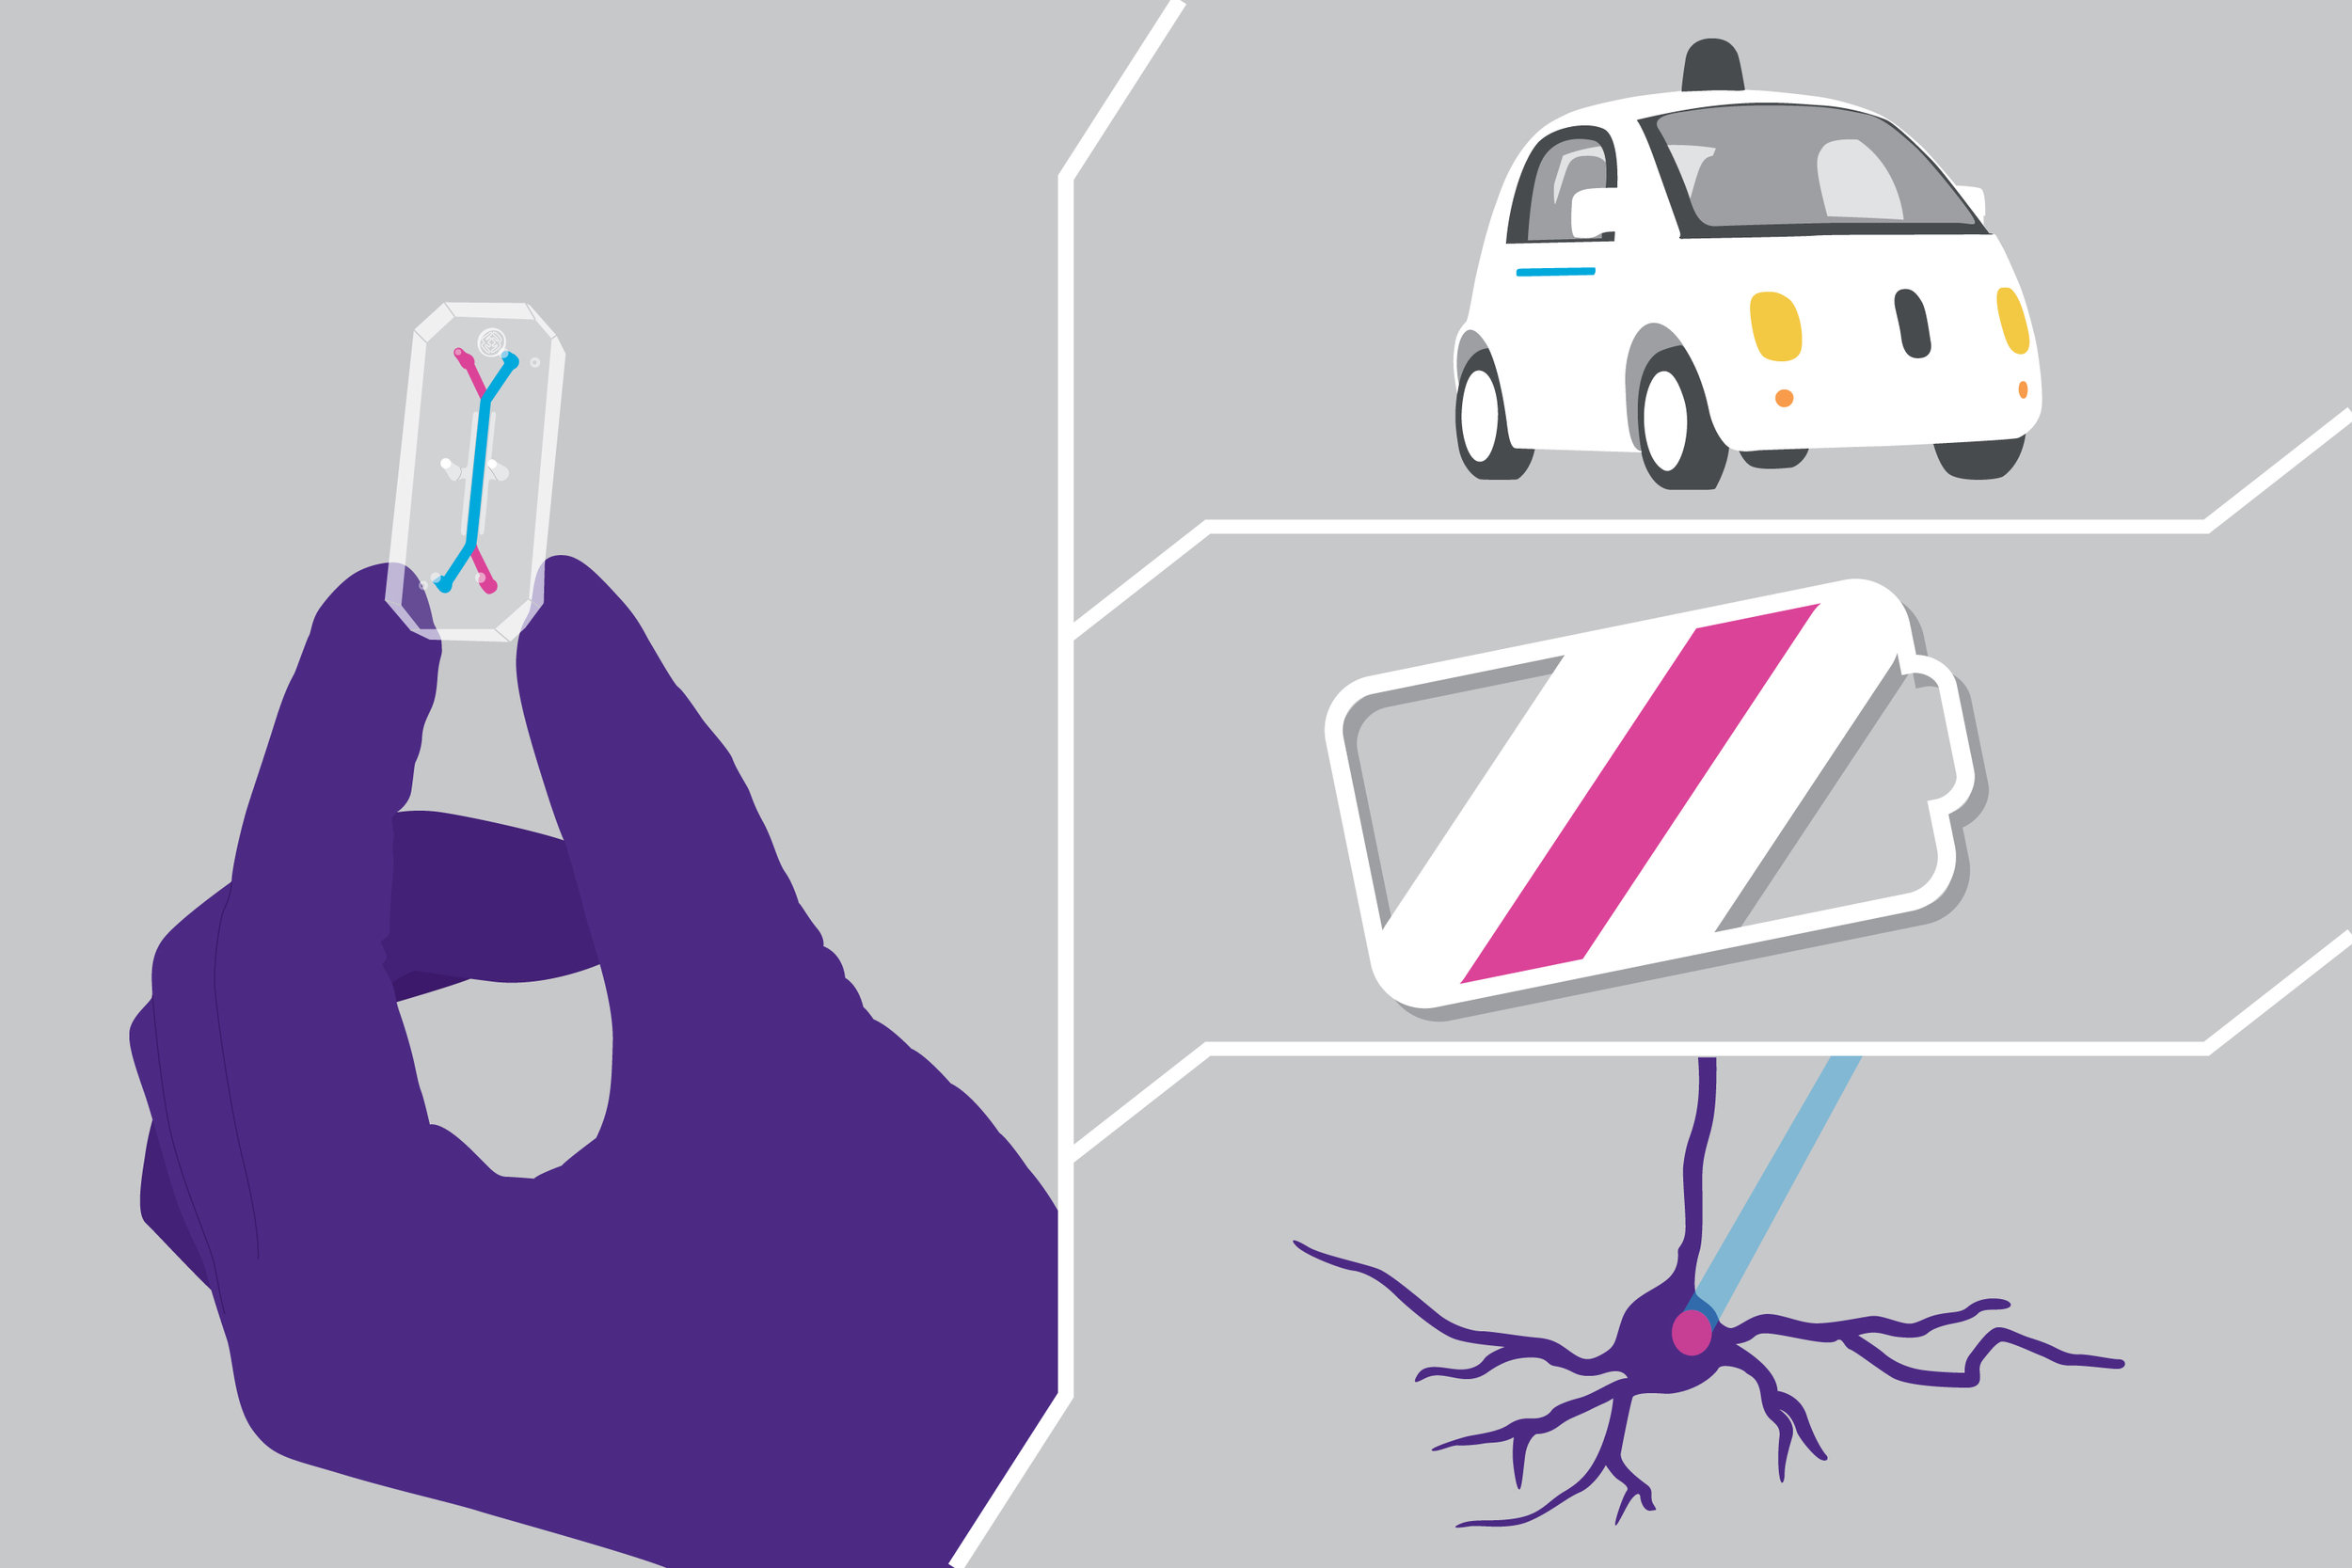 Our Organ-Chips were named a top 10 technology of 2016, along with self-driving cars, next generation batteries, and optogenetics.